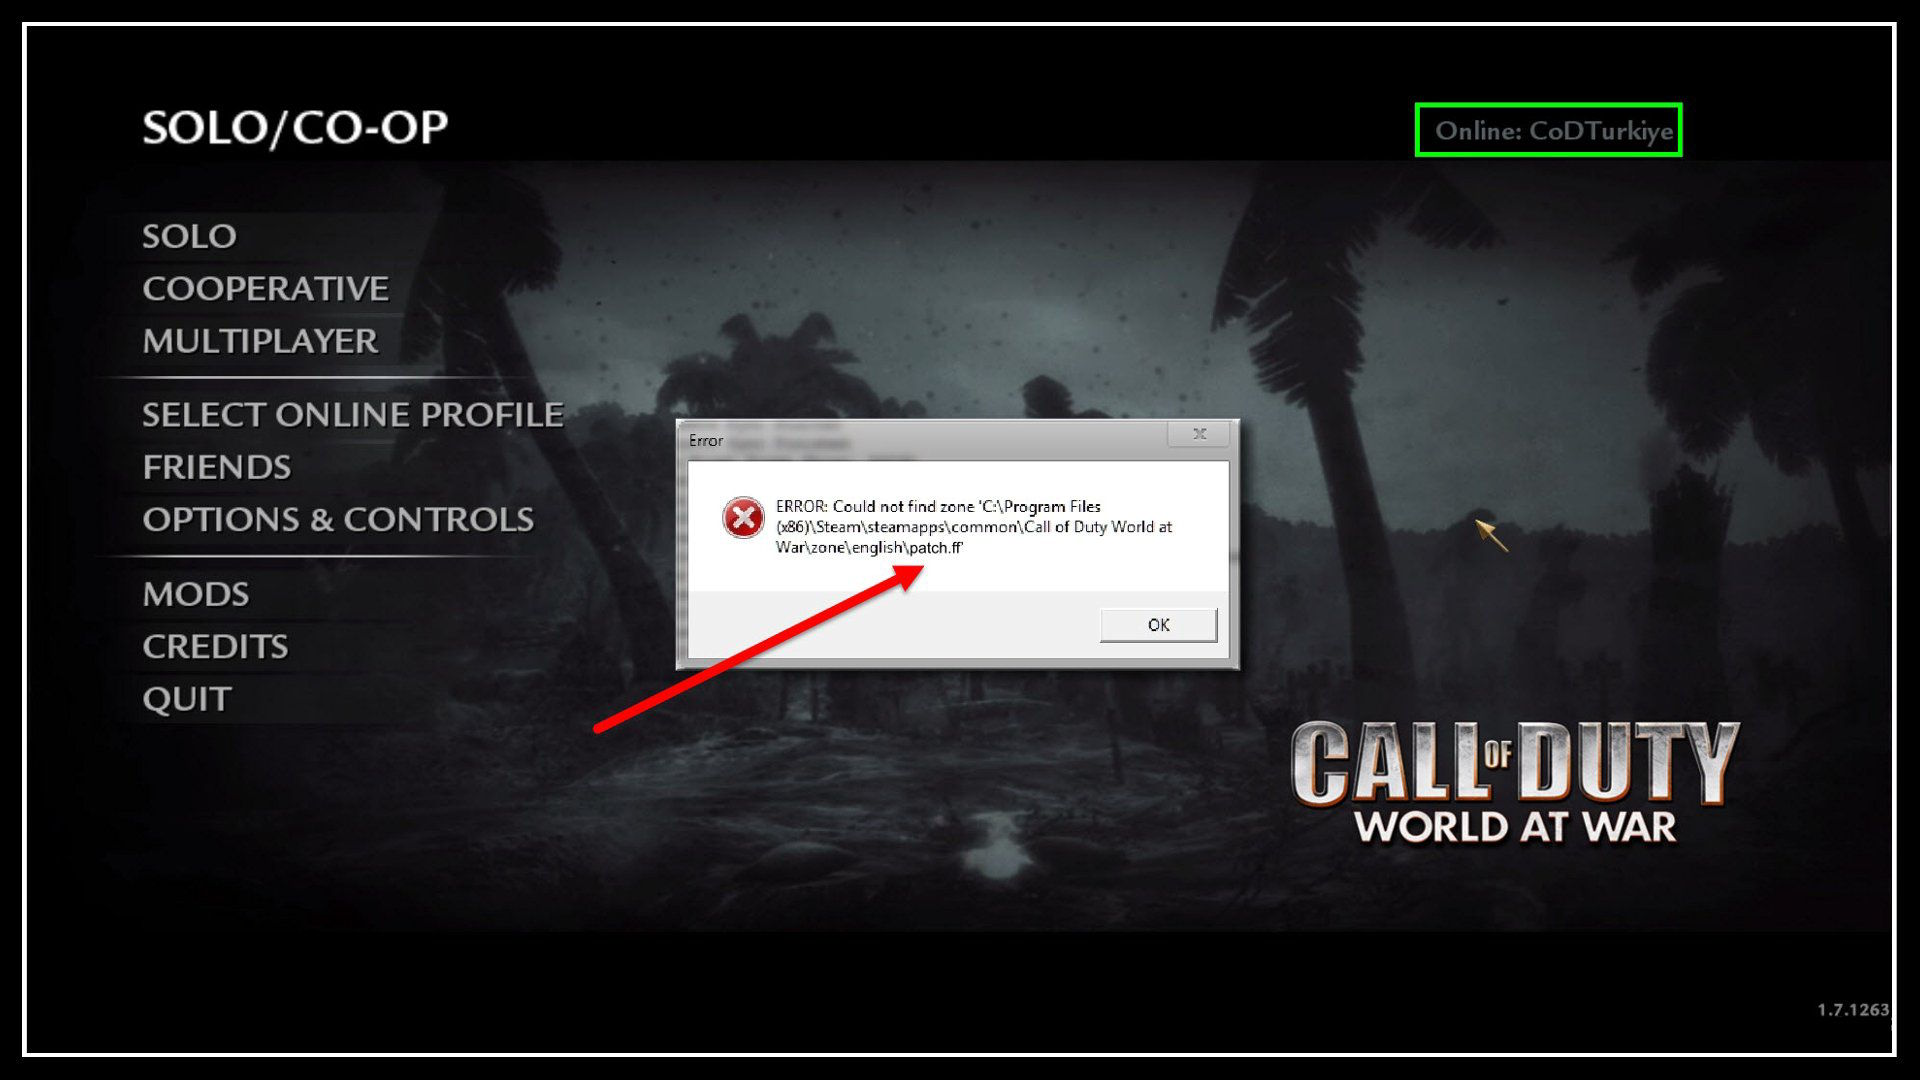 Call of Duty 5 World at War patch.ff Error